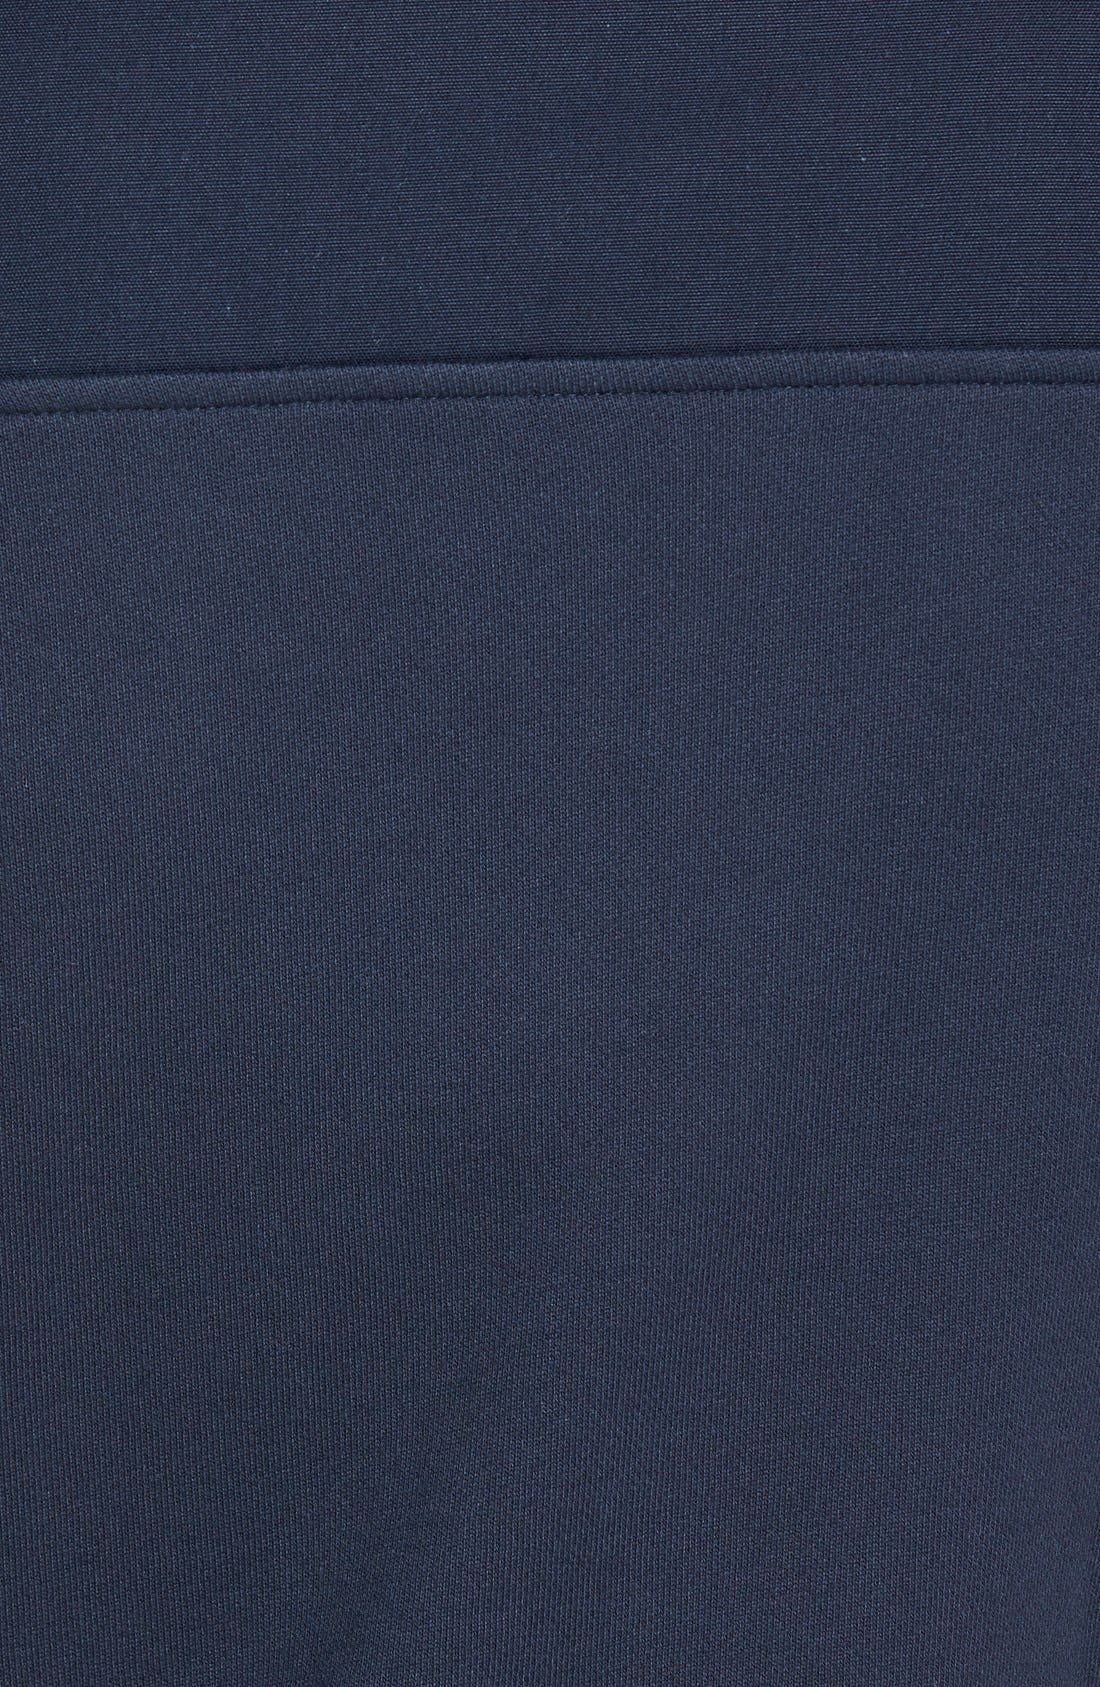 Shep Half Zip French Terry Pullover,                             Alternate thumbnail 7, color,                             VINEYARD NAVY